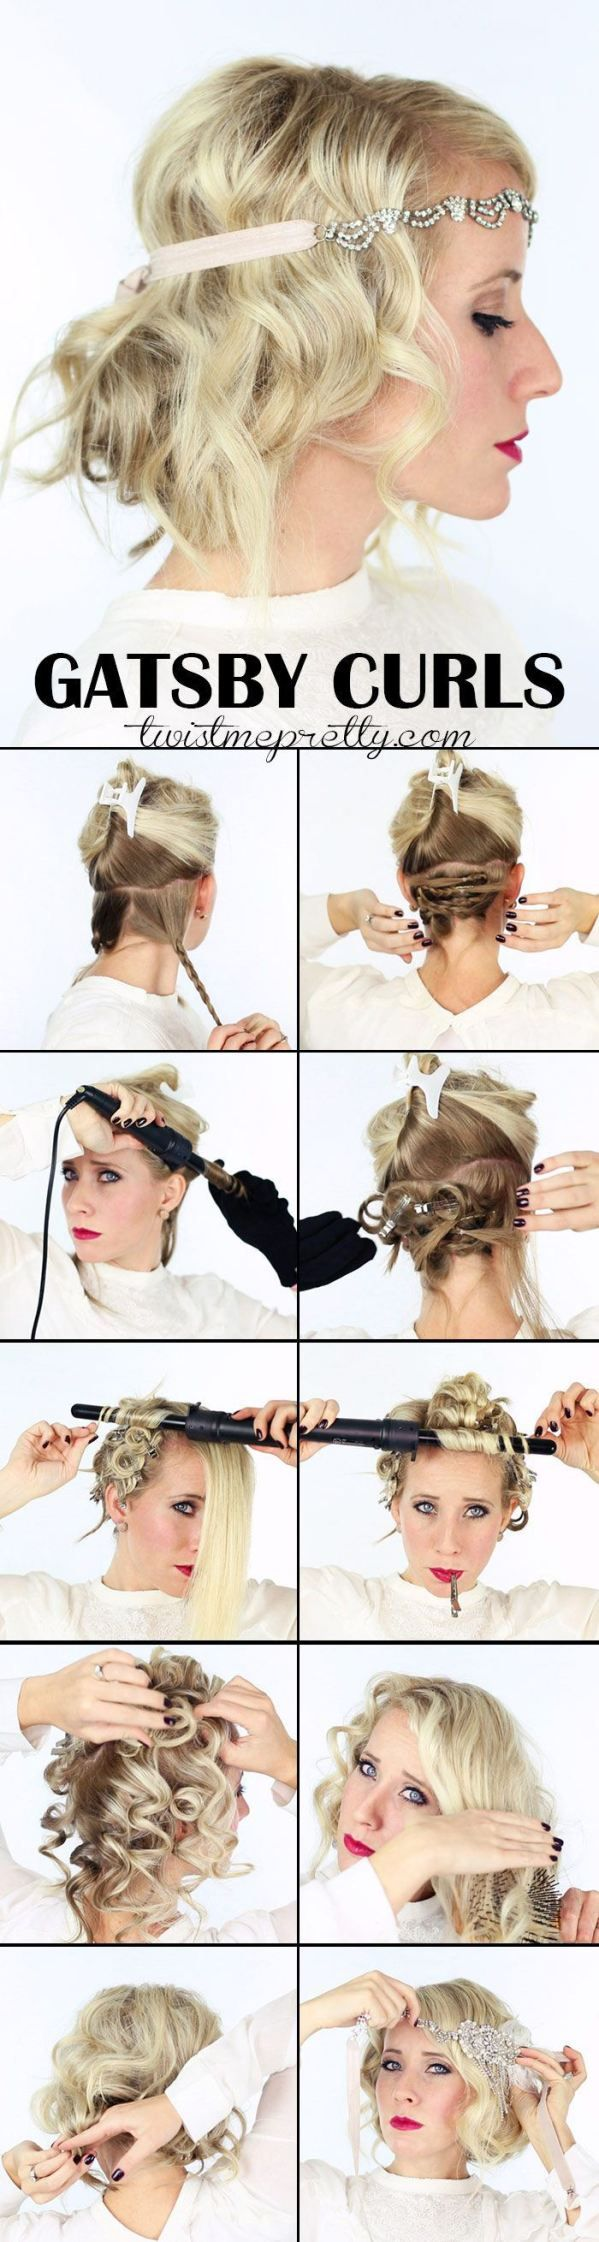 http://lesson.viralovo.com/the-great-gatsby-glam/2/